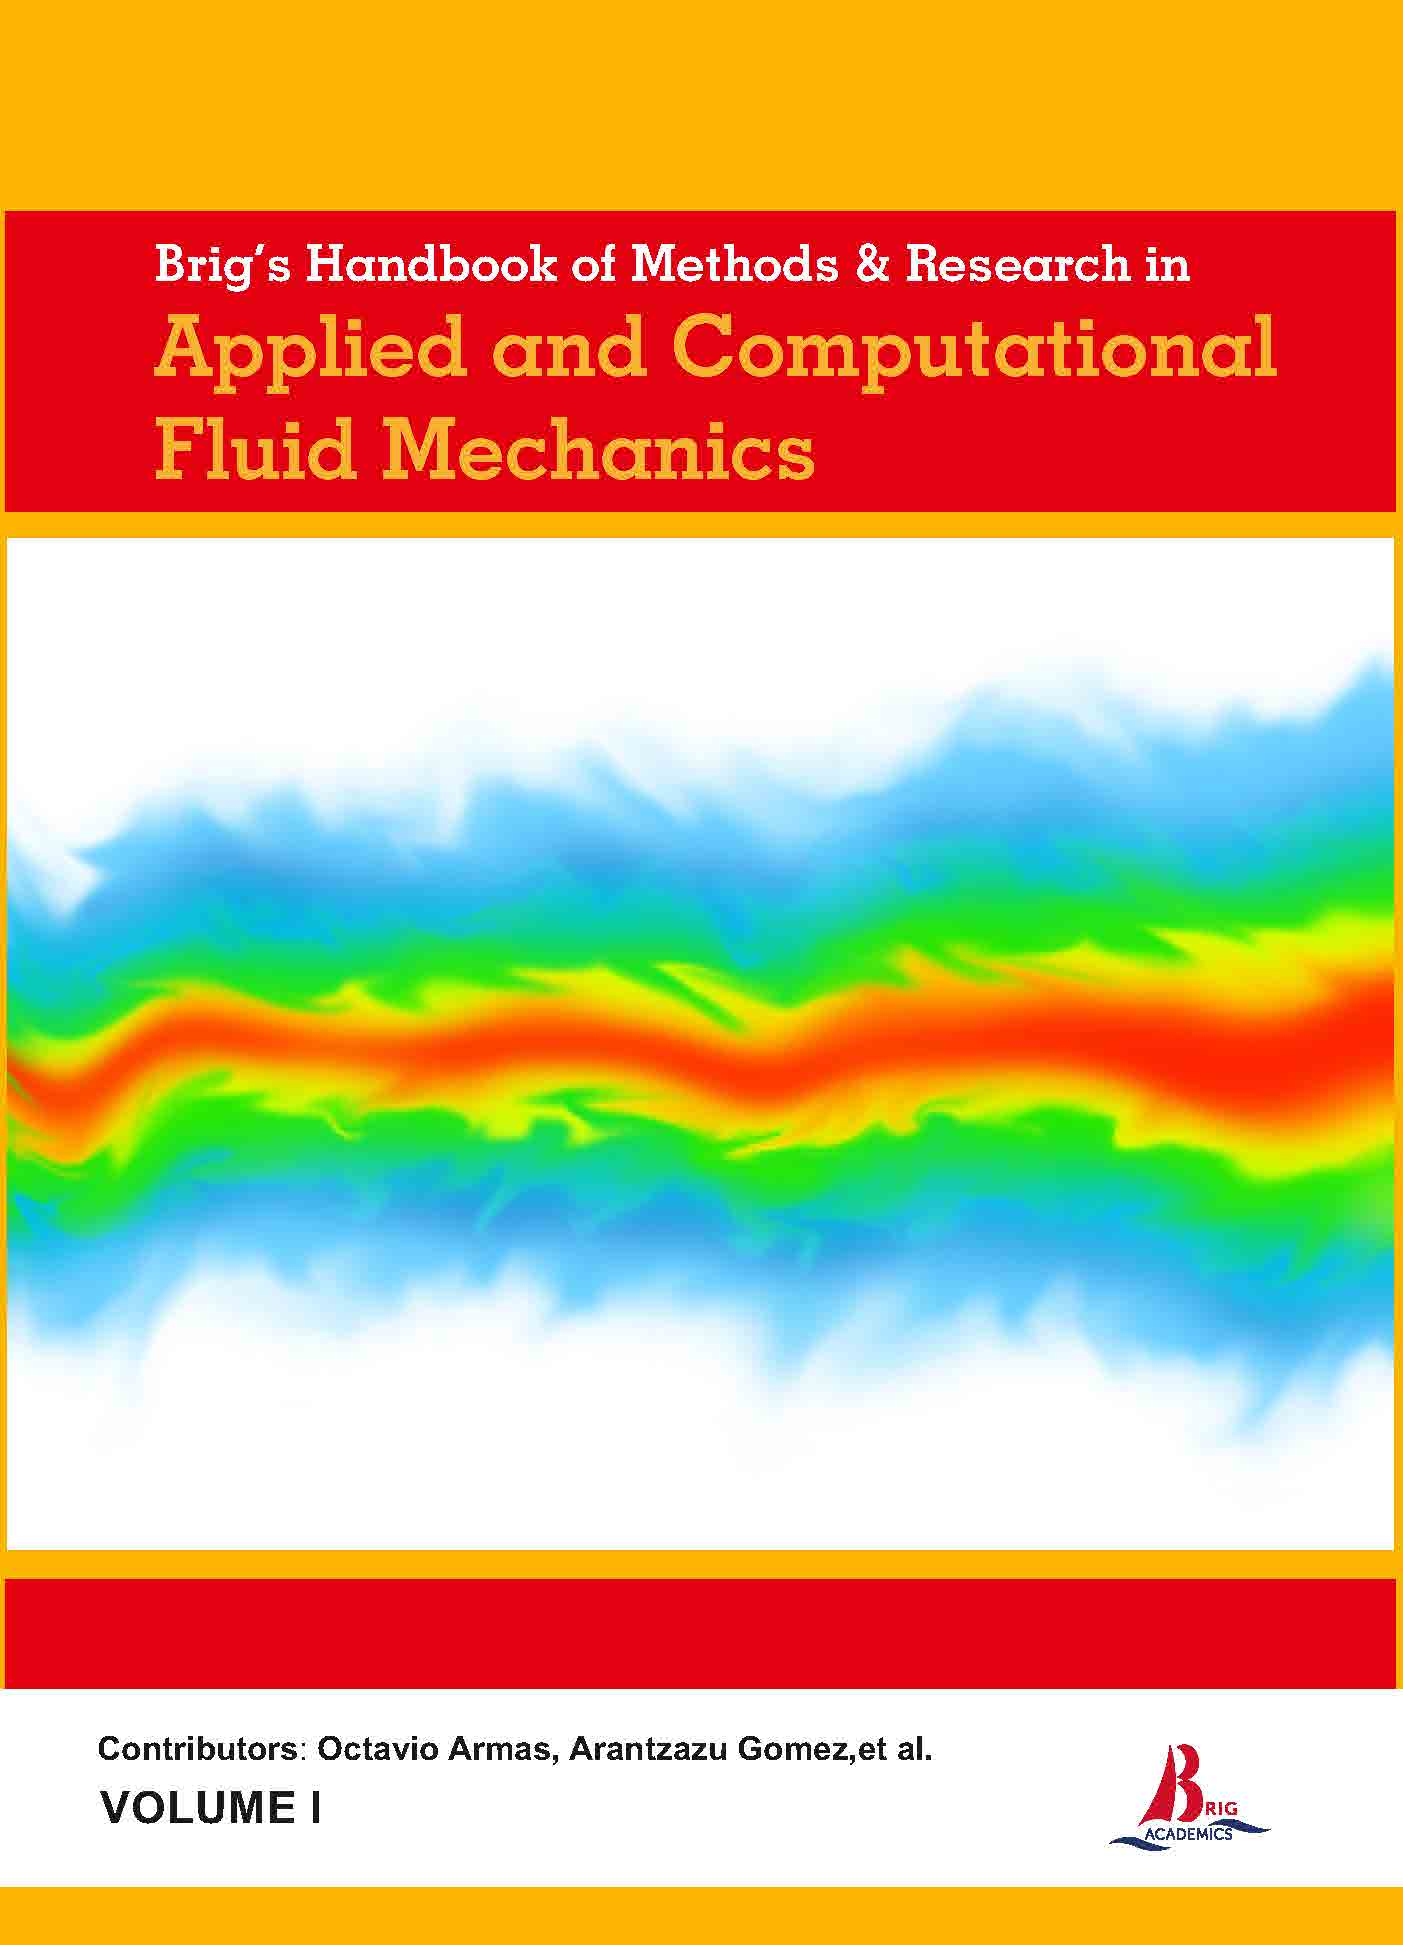 Brig's Handbook of Methods & Research in Applied and Computational Fluid Mechanics